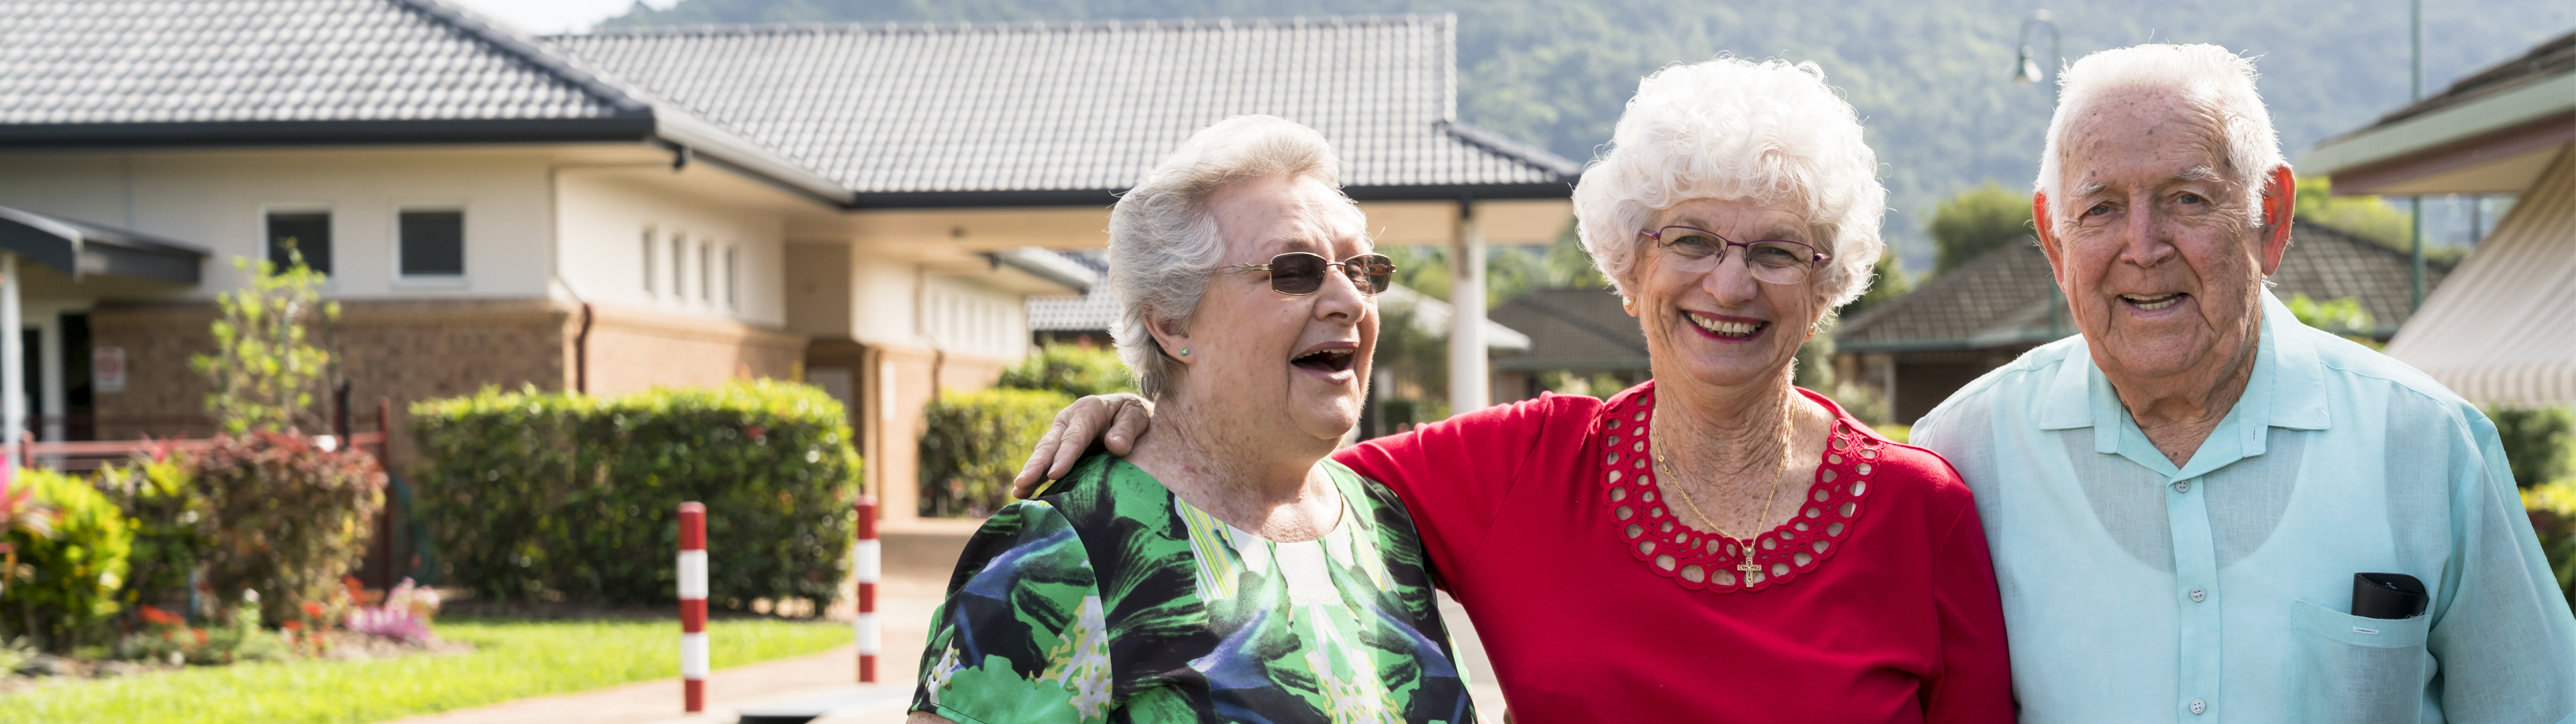 Cairns Aged Care Information Session - Regis Aged Care